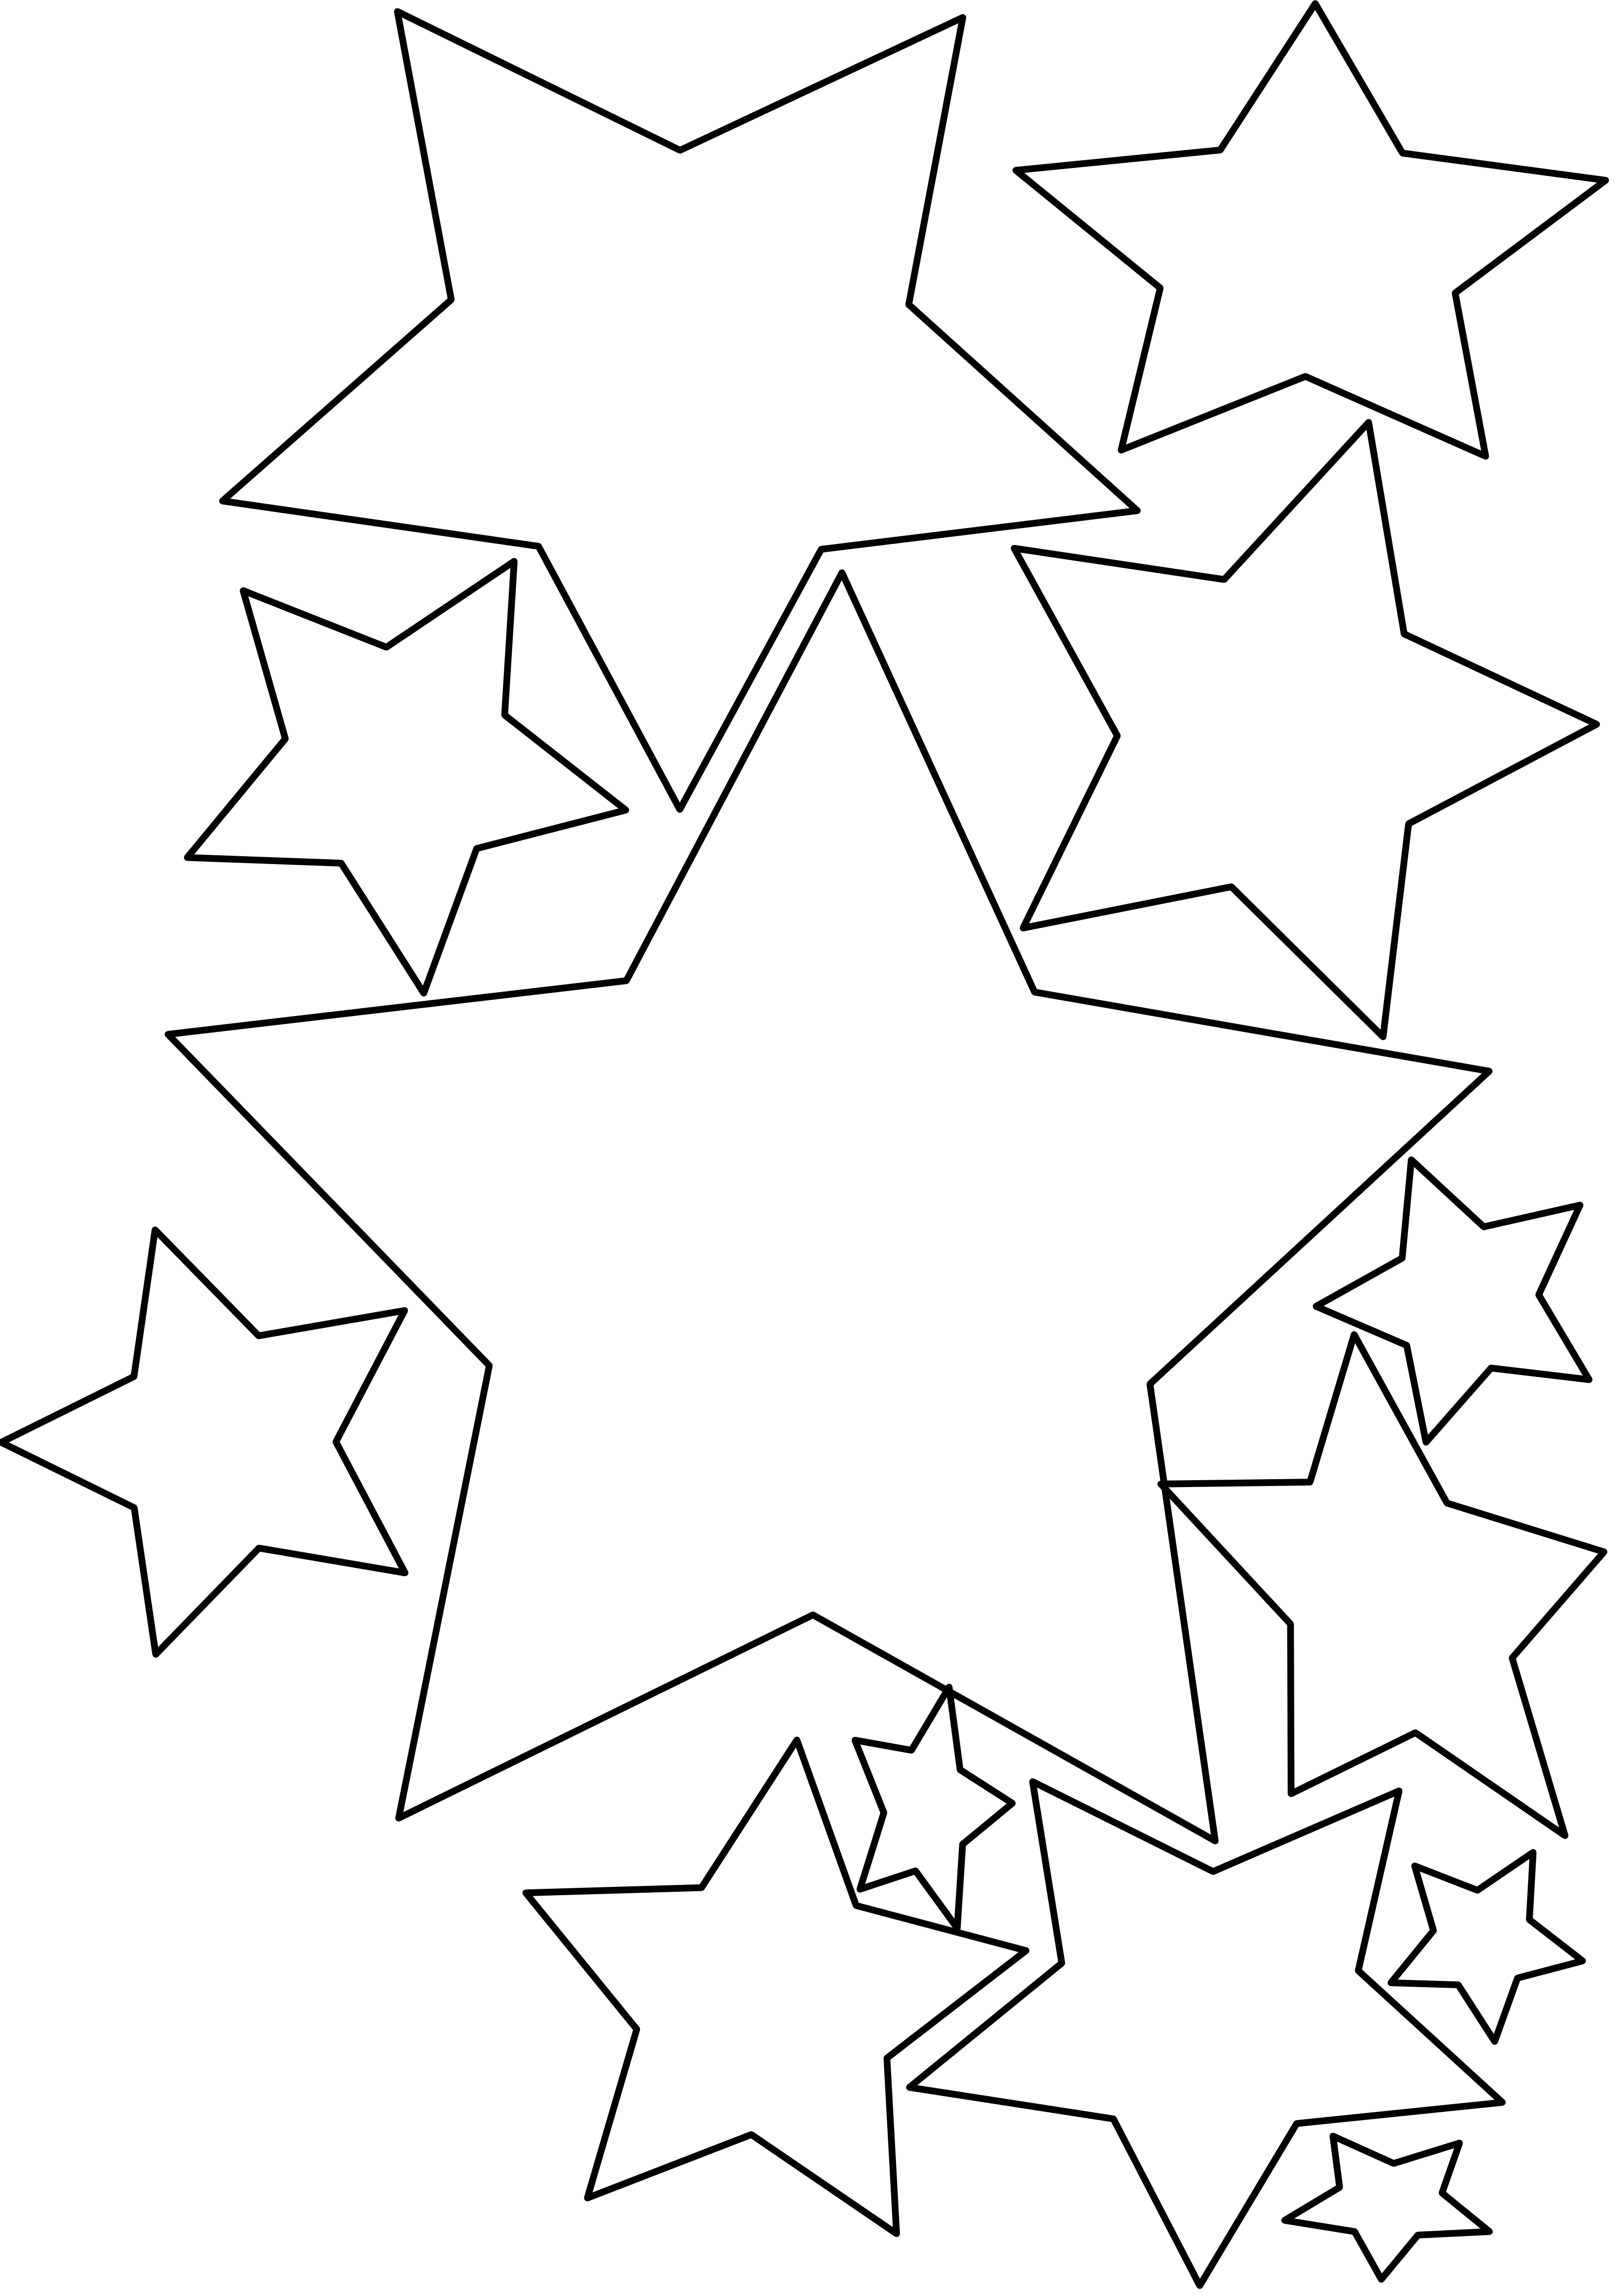 Star transparent background download. Free clipart stars row of 10 black & white